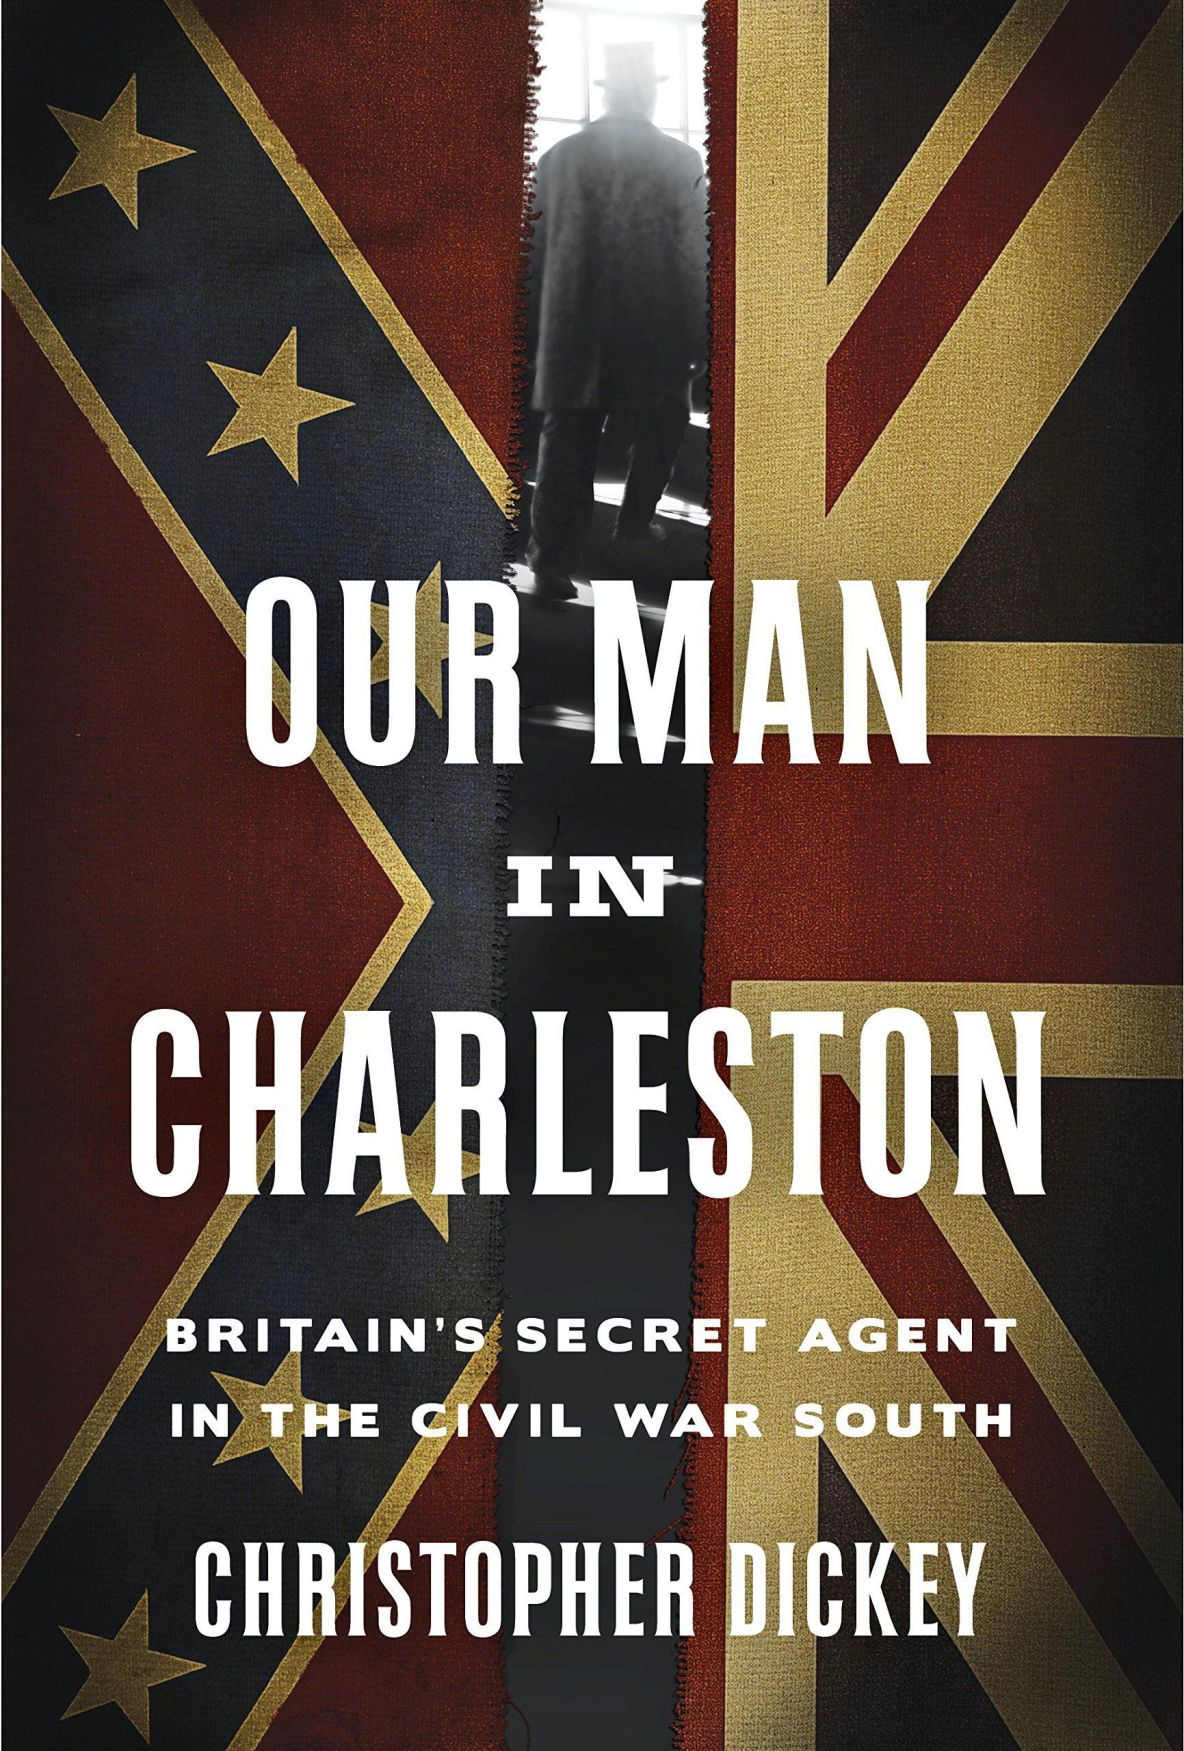 'Our Man in Charleston'